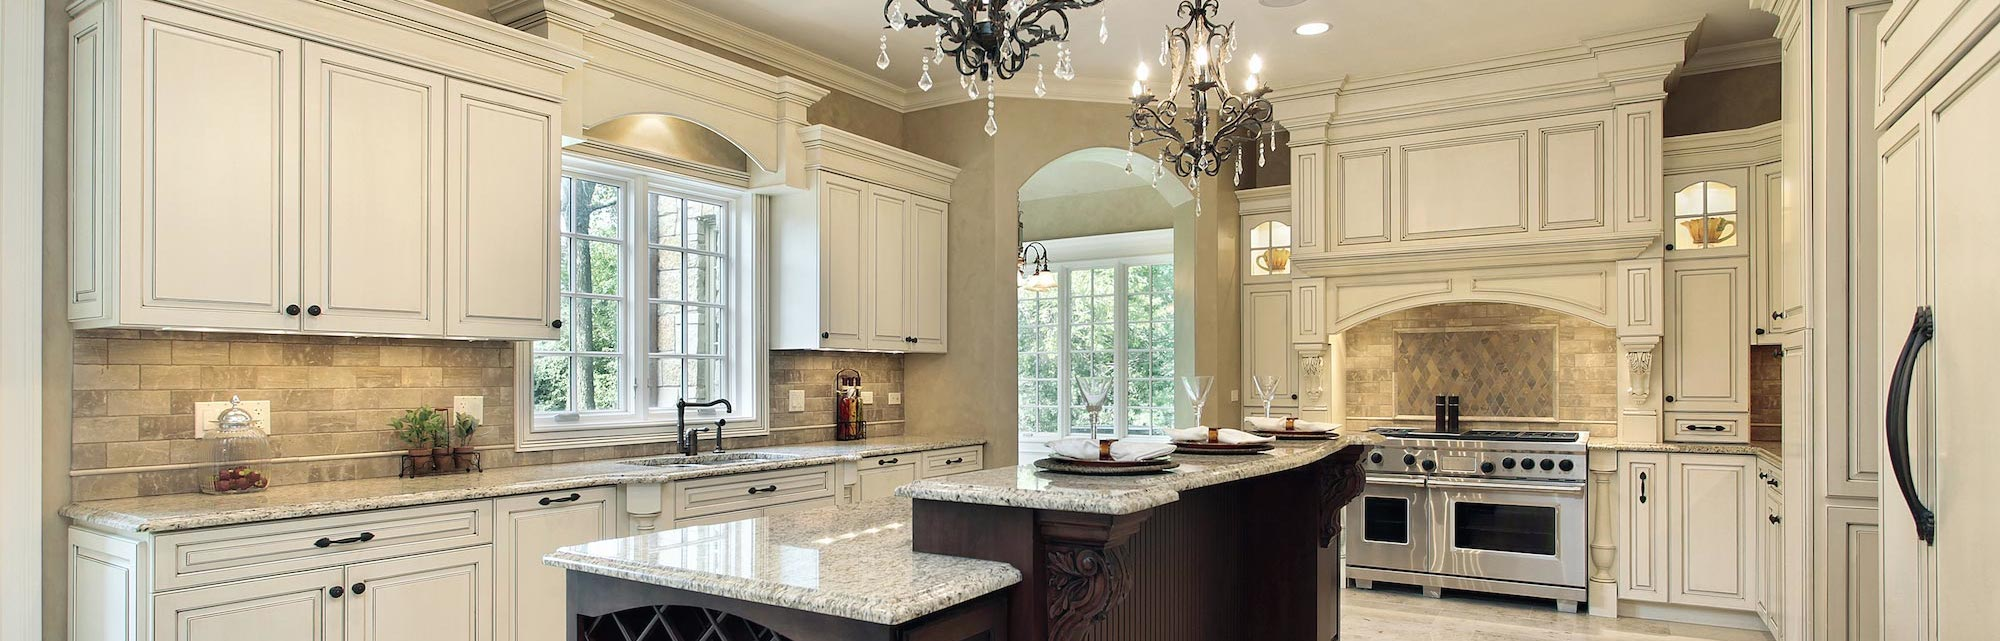 Brightwaters Cabinets, Long Island NY | Kitchen Cabinets Long Island